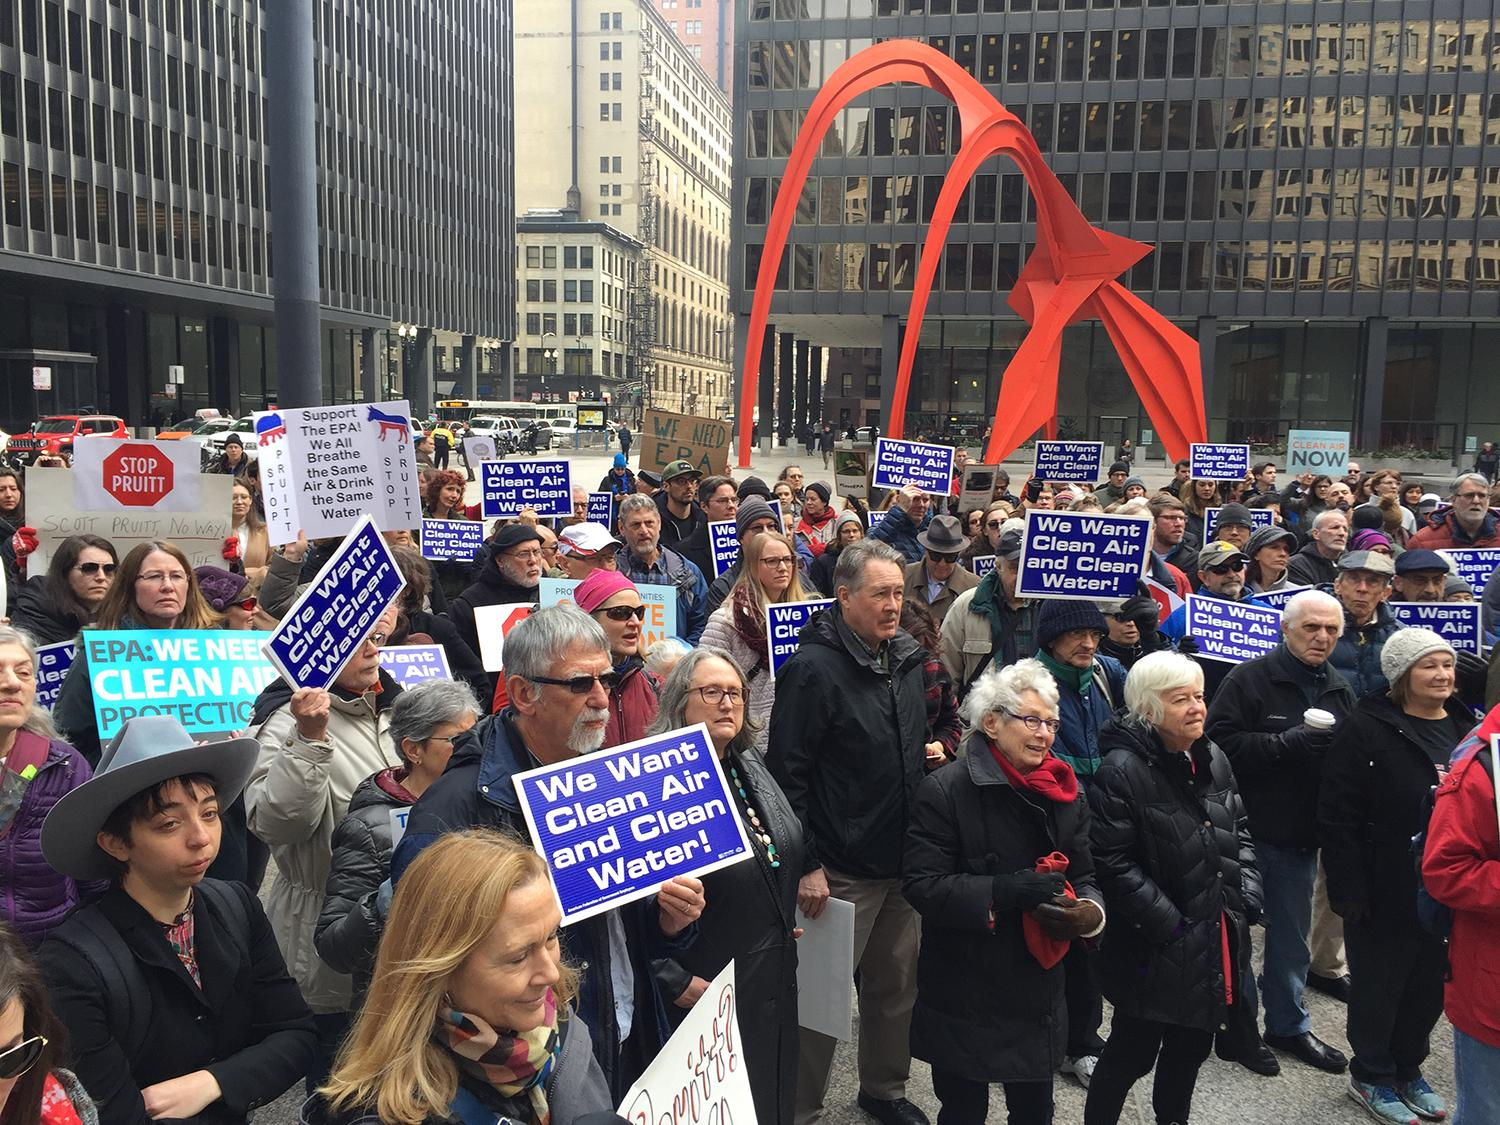 EPA staff and supporters attend a rally Feb. 6 in support of the agency in downtown Chicago. (Courtesy Sierra Club)